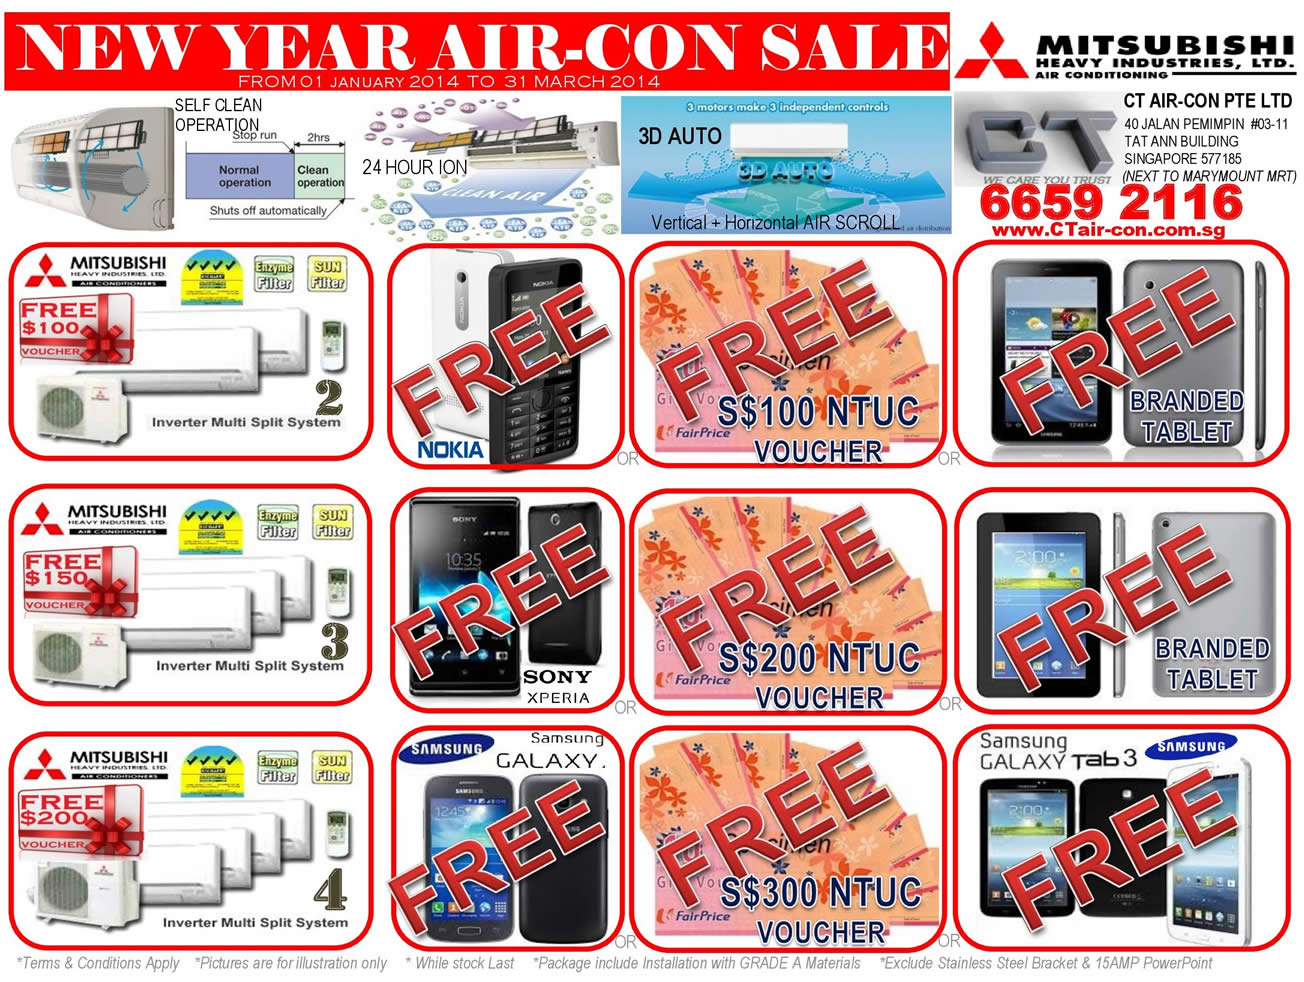 Mitsubishi Heavy Industries Air Conditioners, Free Gifts